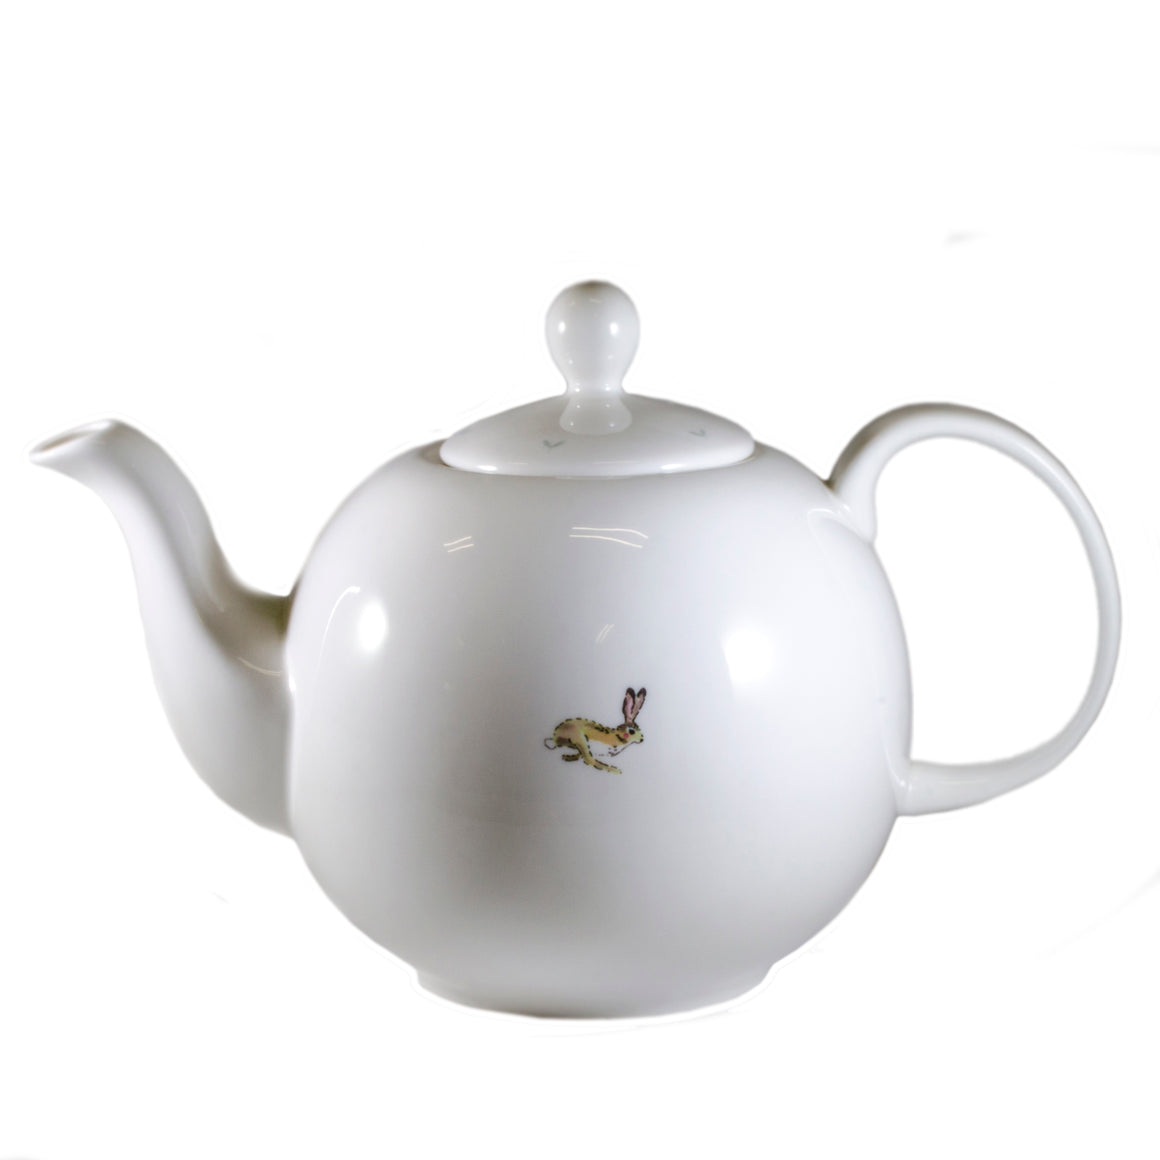 Hare Teapot - Todd & Holland Tea Merchants